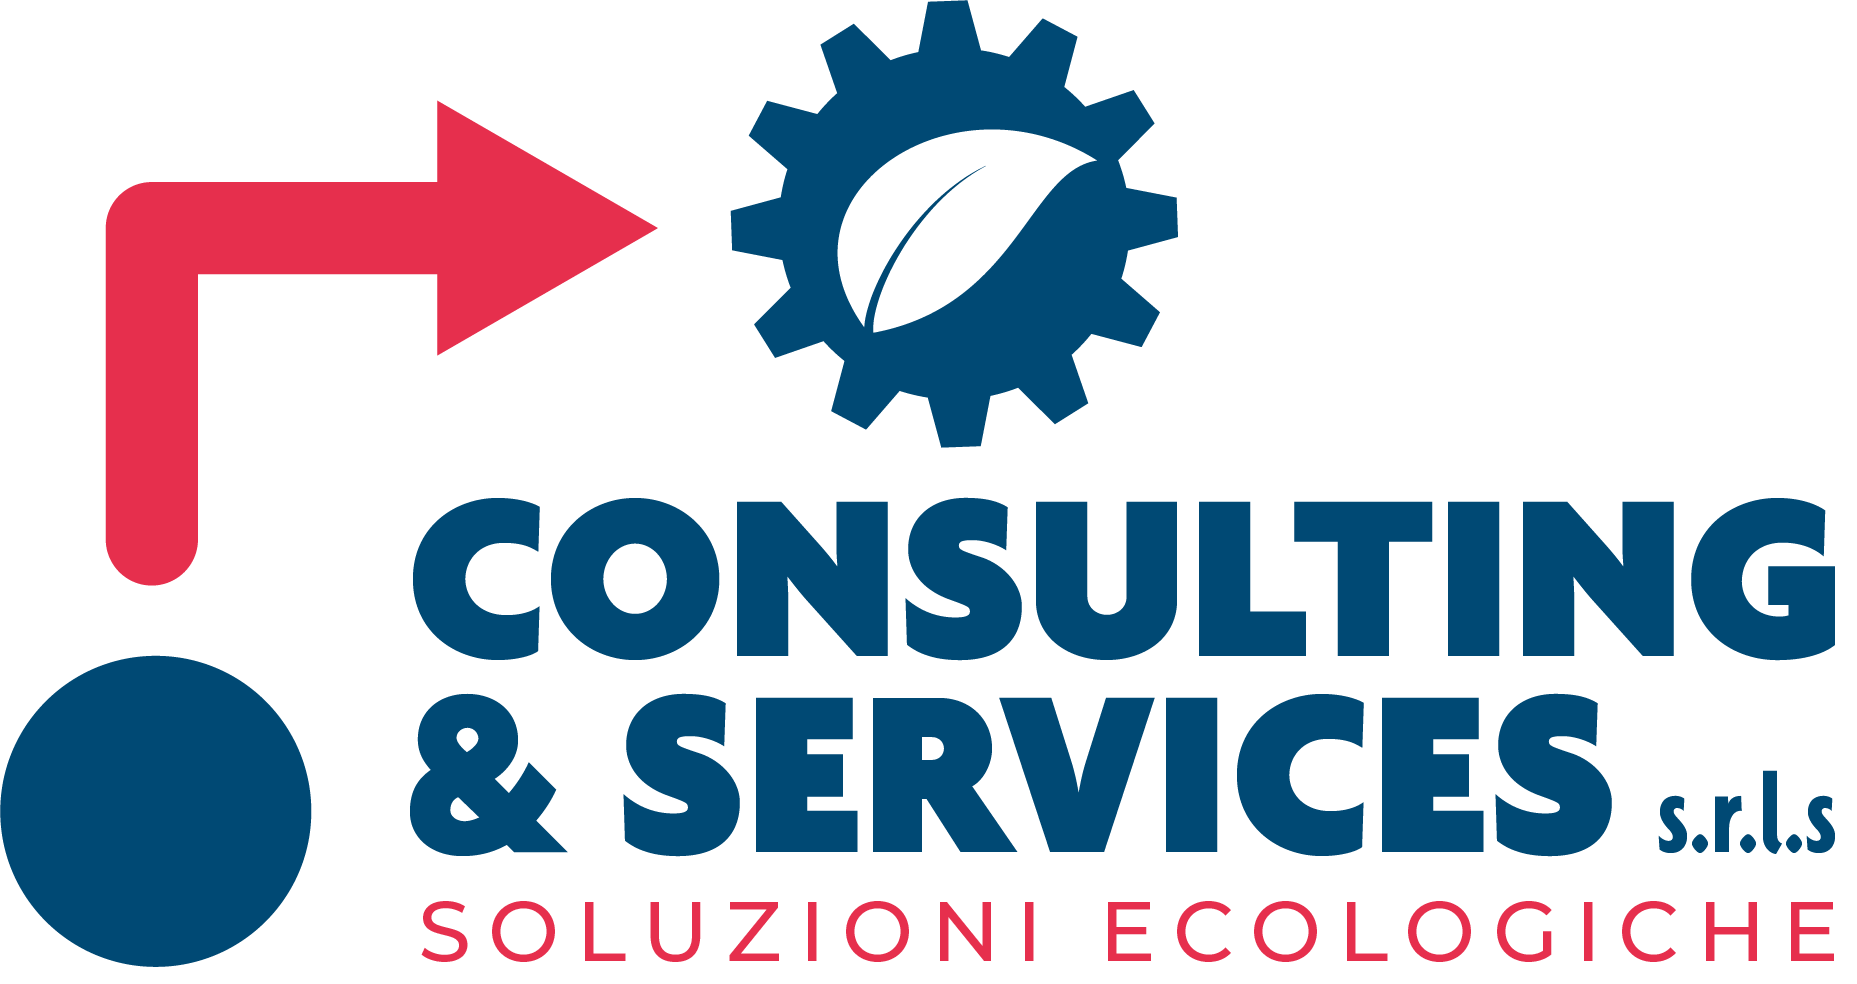 consultingeservices.it